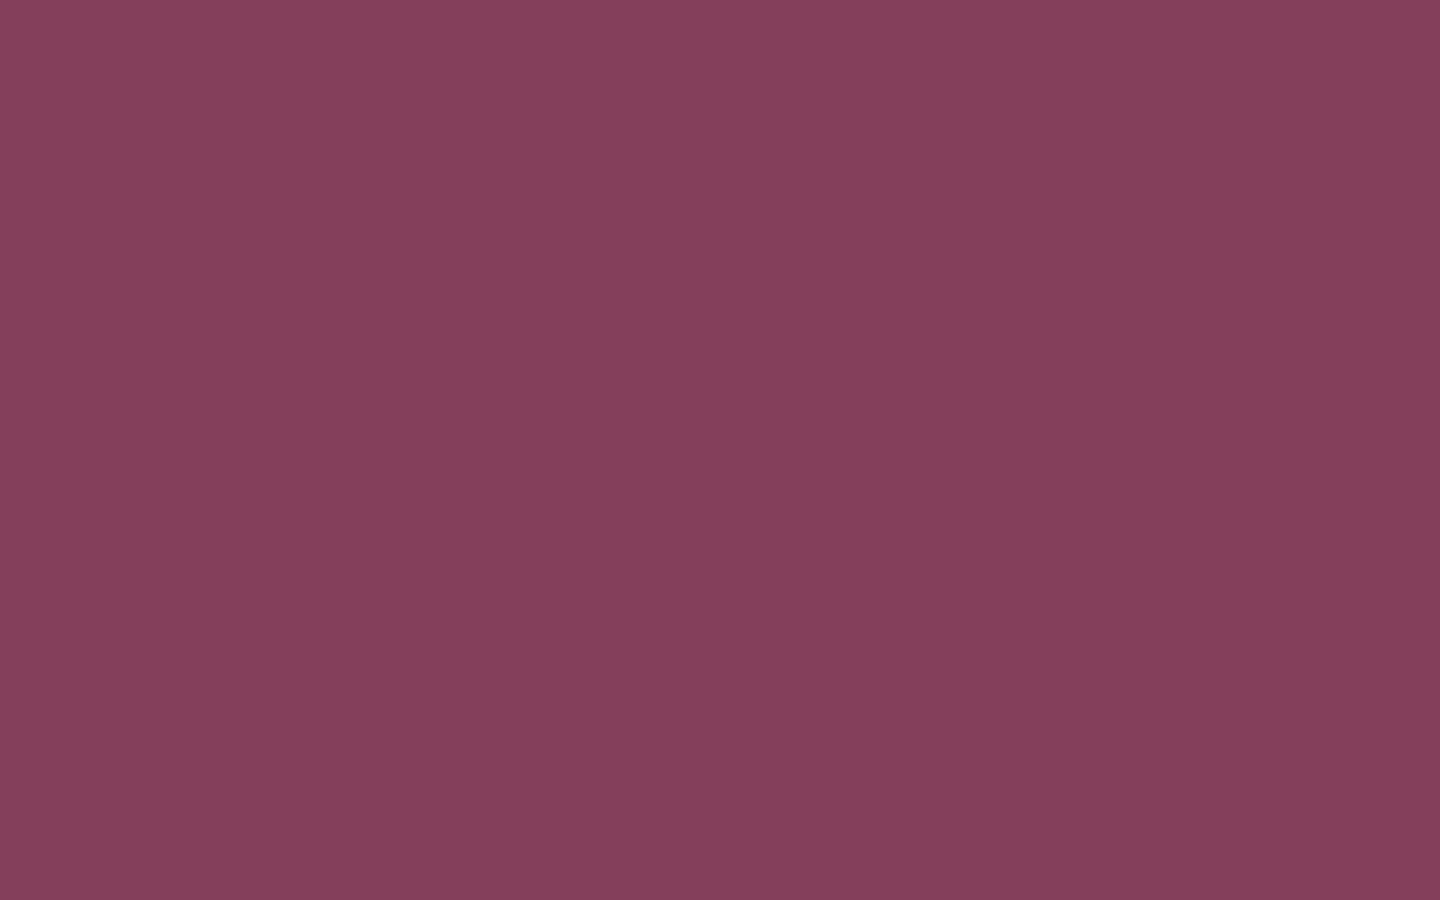 1440x900 Deep Ruby Solid Color Background